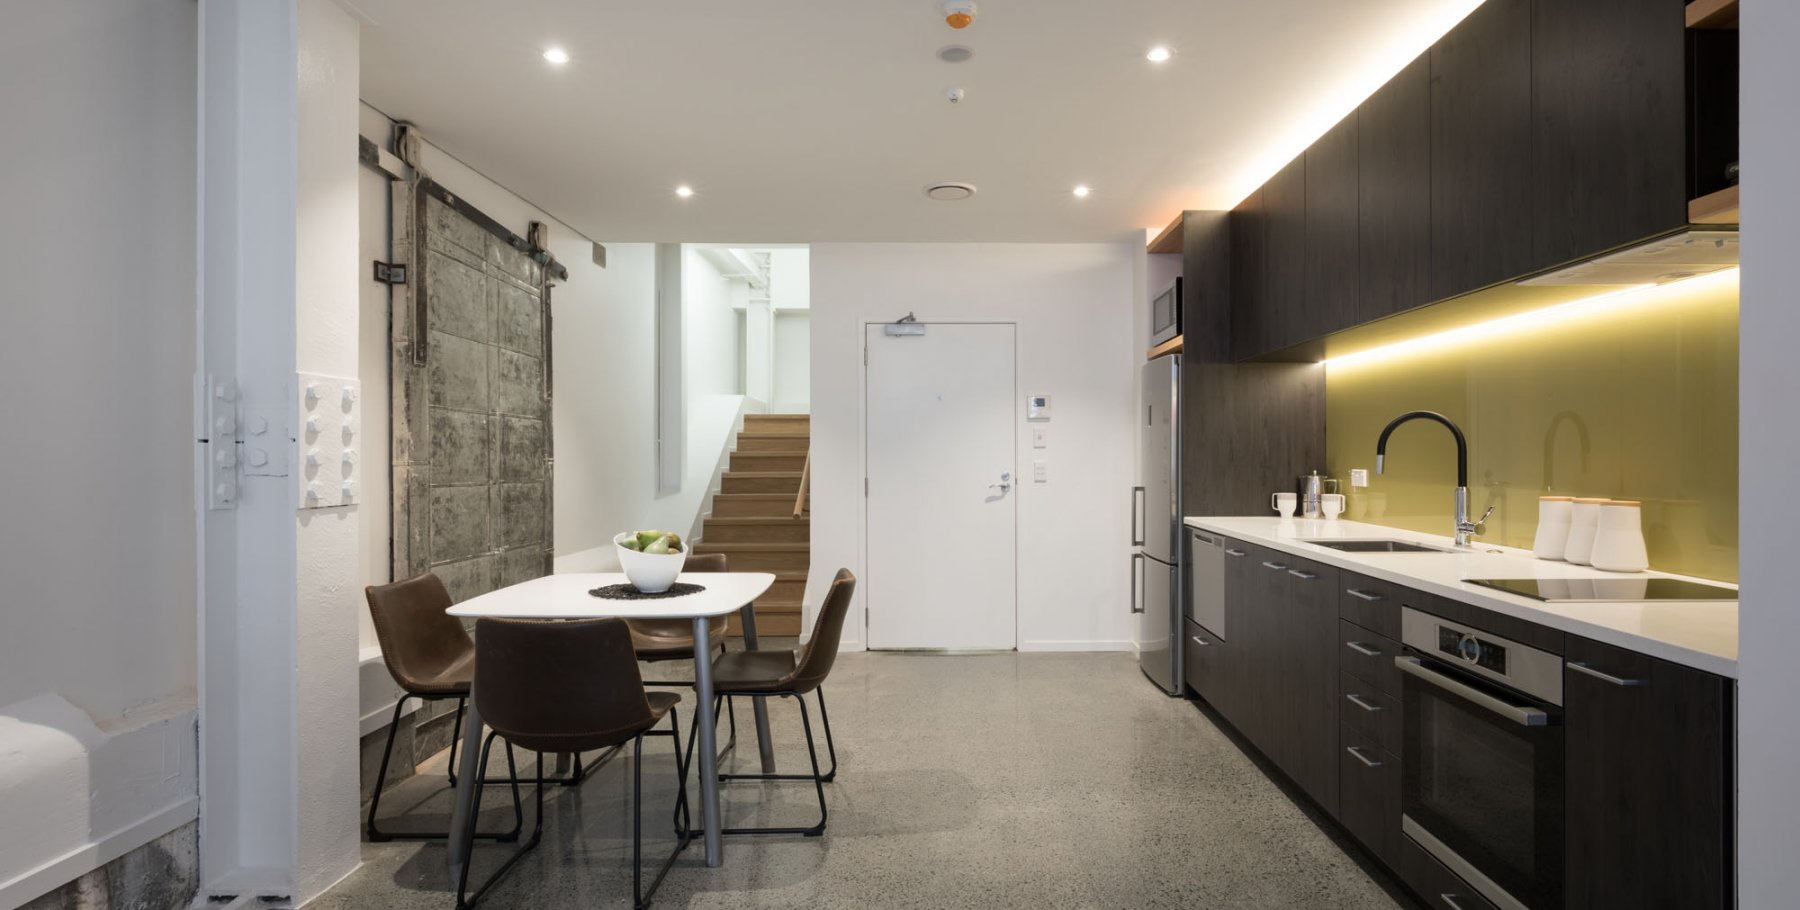 Queen Street Apartments By Pocketspace Interiors